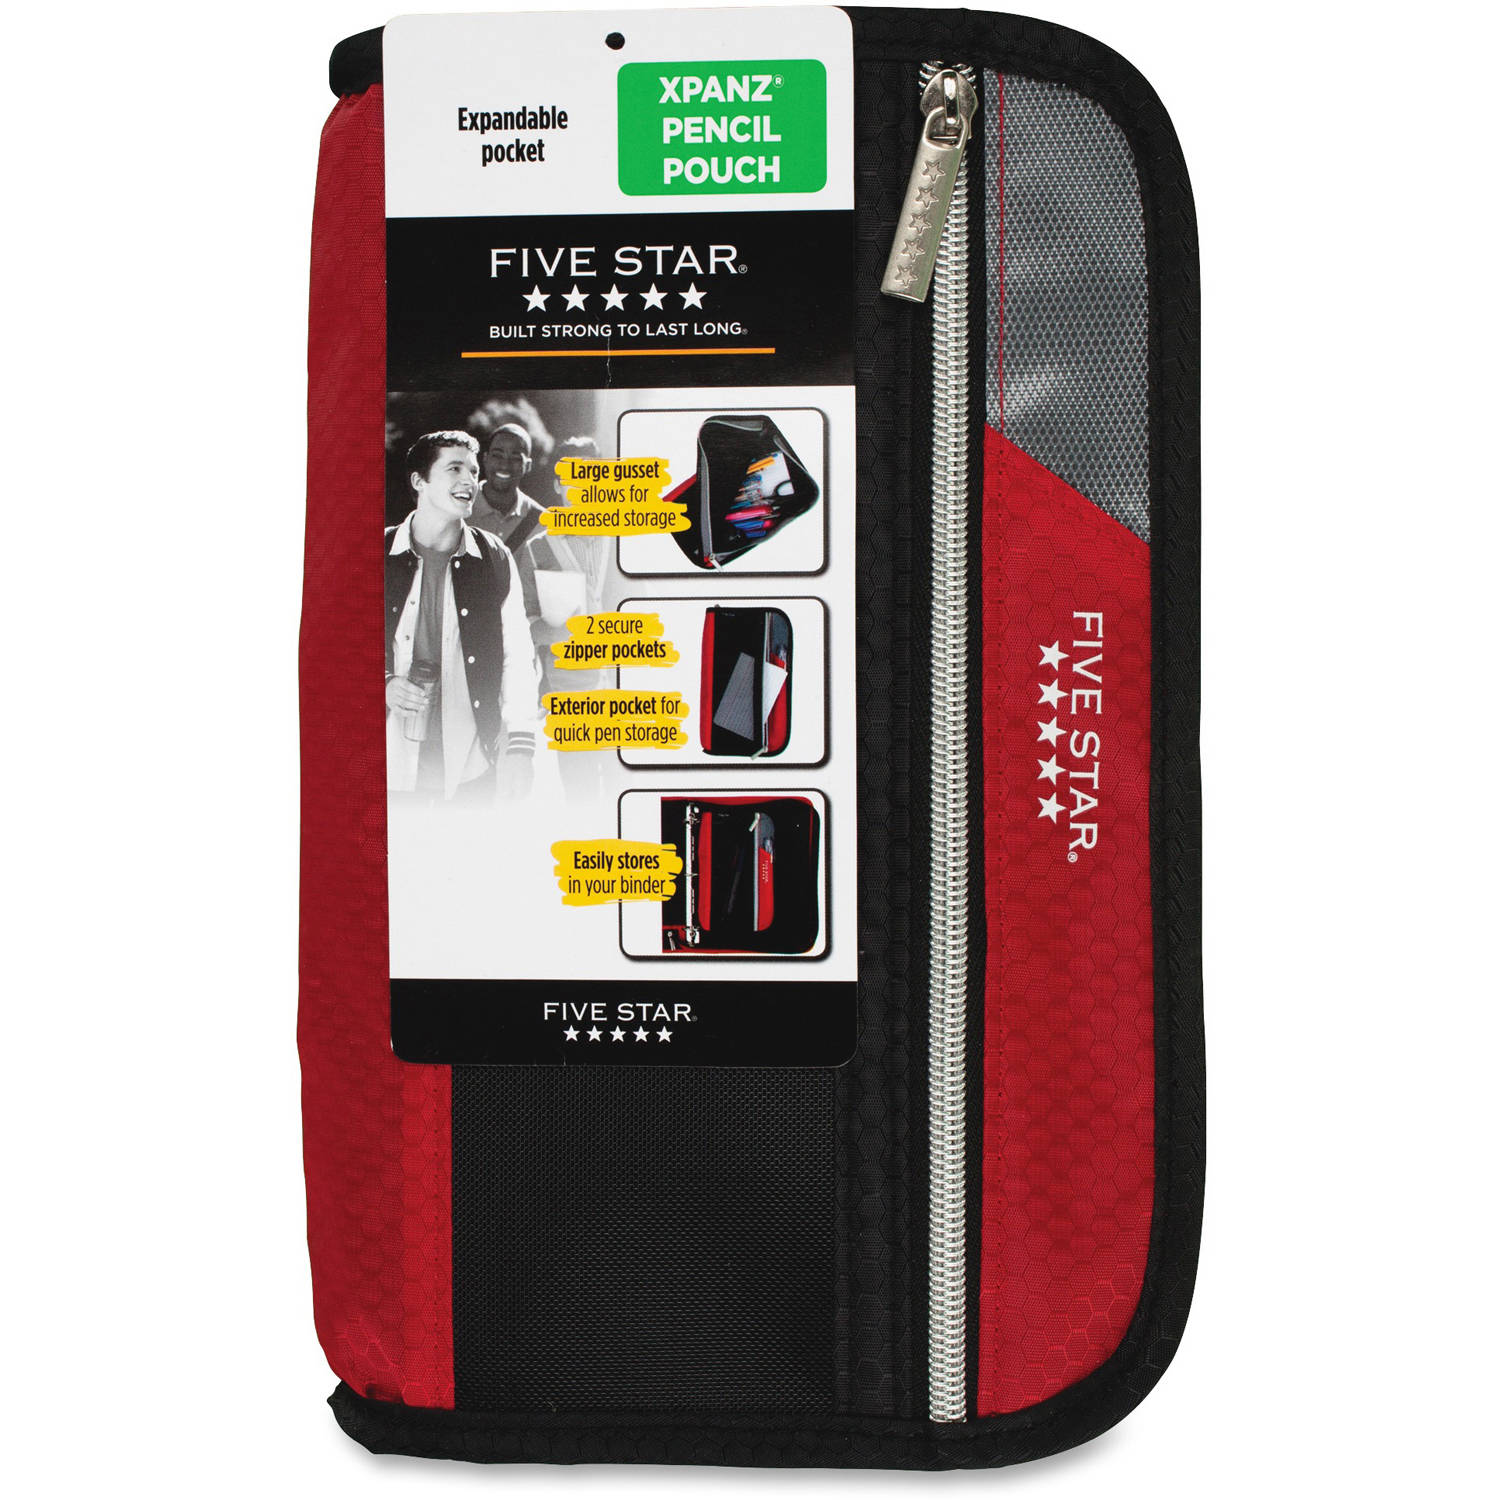 Five Star Xpanz Carrying Case for Pencil, Pen, Supplies, Assorted